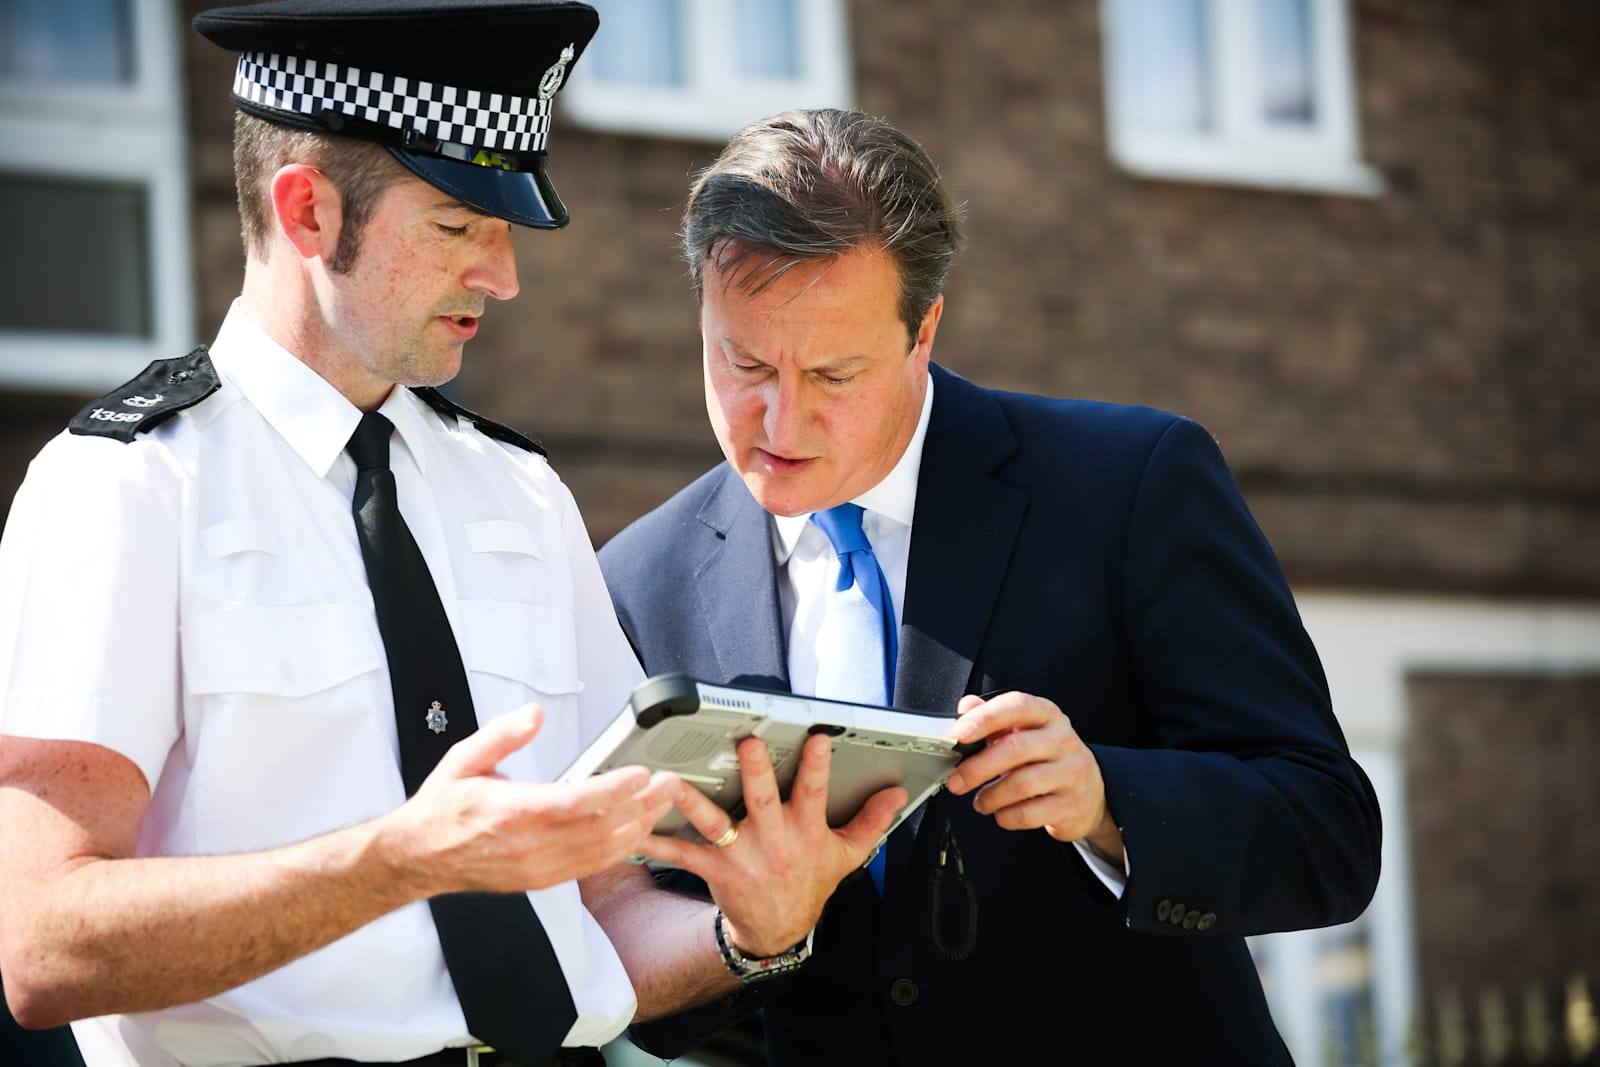 uk police often misuse sensitive data for personal reasons it s no wonder people are so fervently concerned privacy when little by little it seems harder to maintain you could now be denied entry into the us